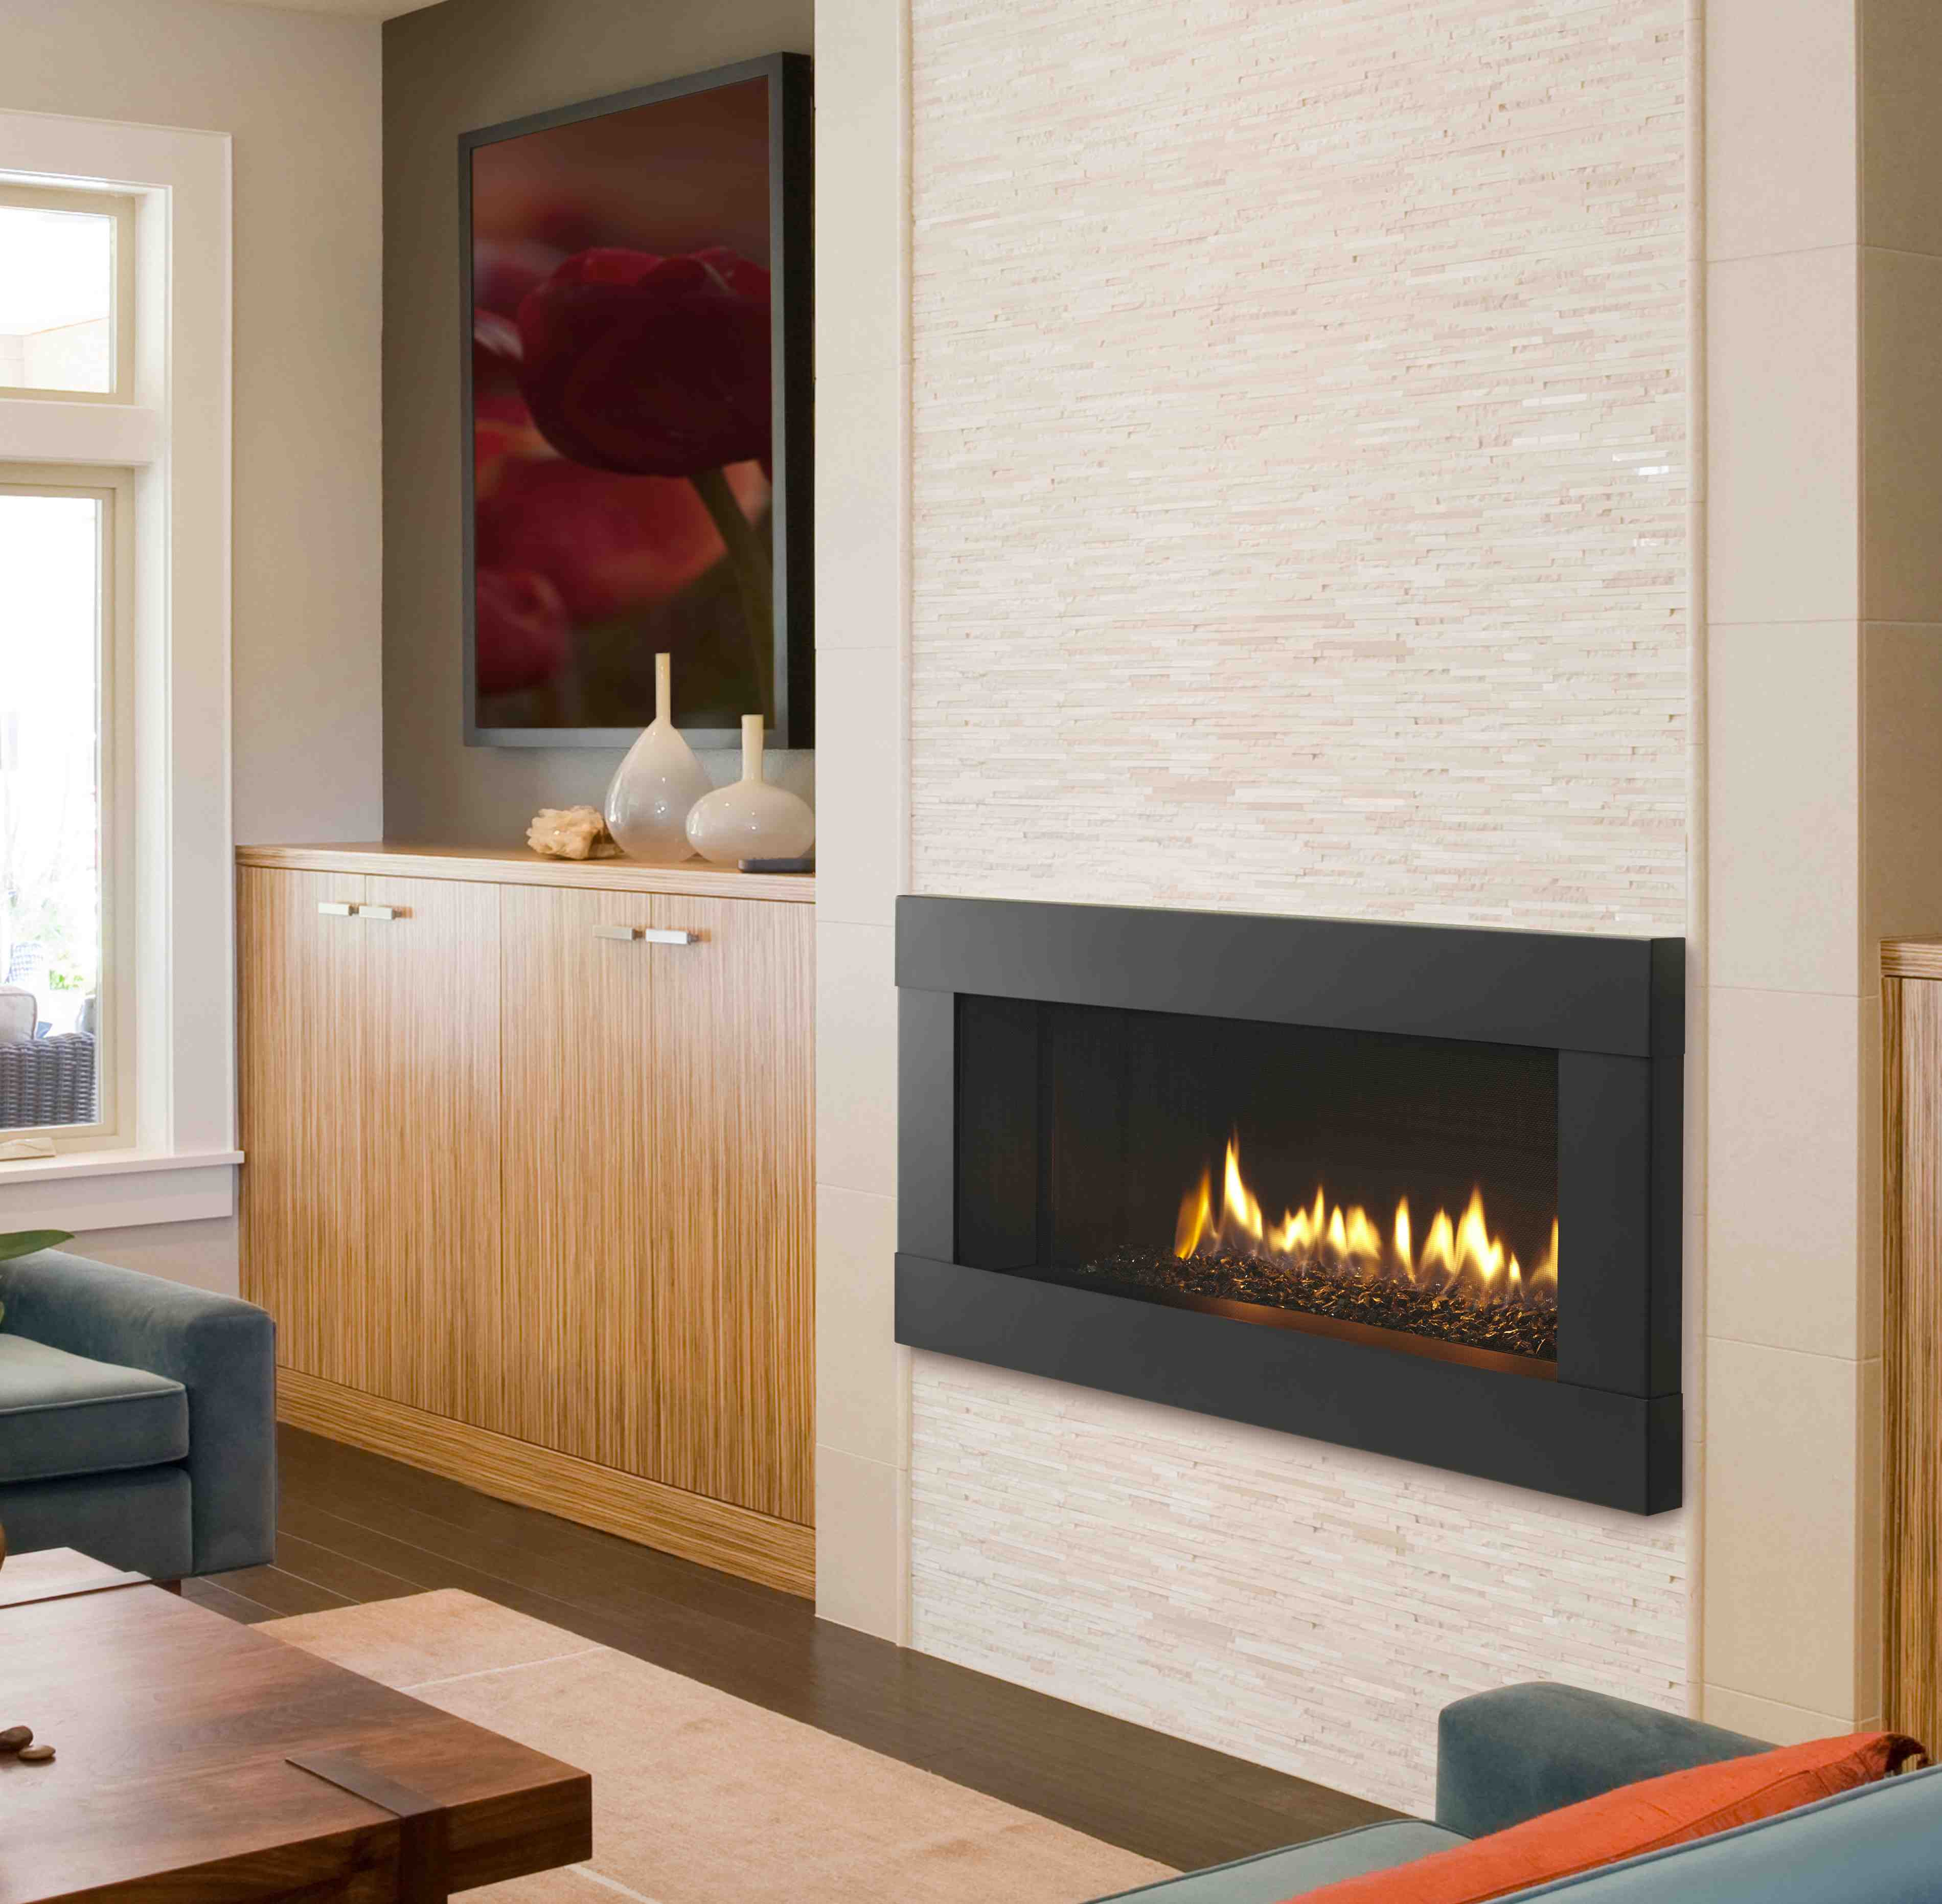 Hearth & Home Technologies Features New Designs